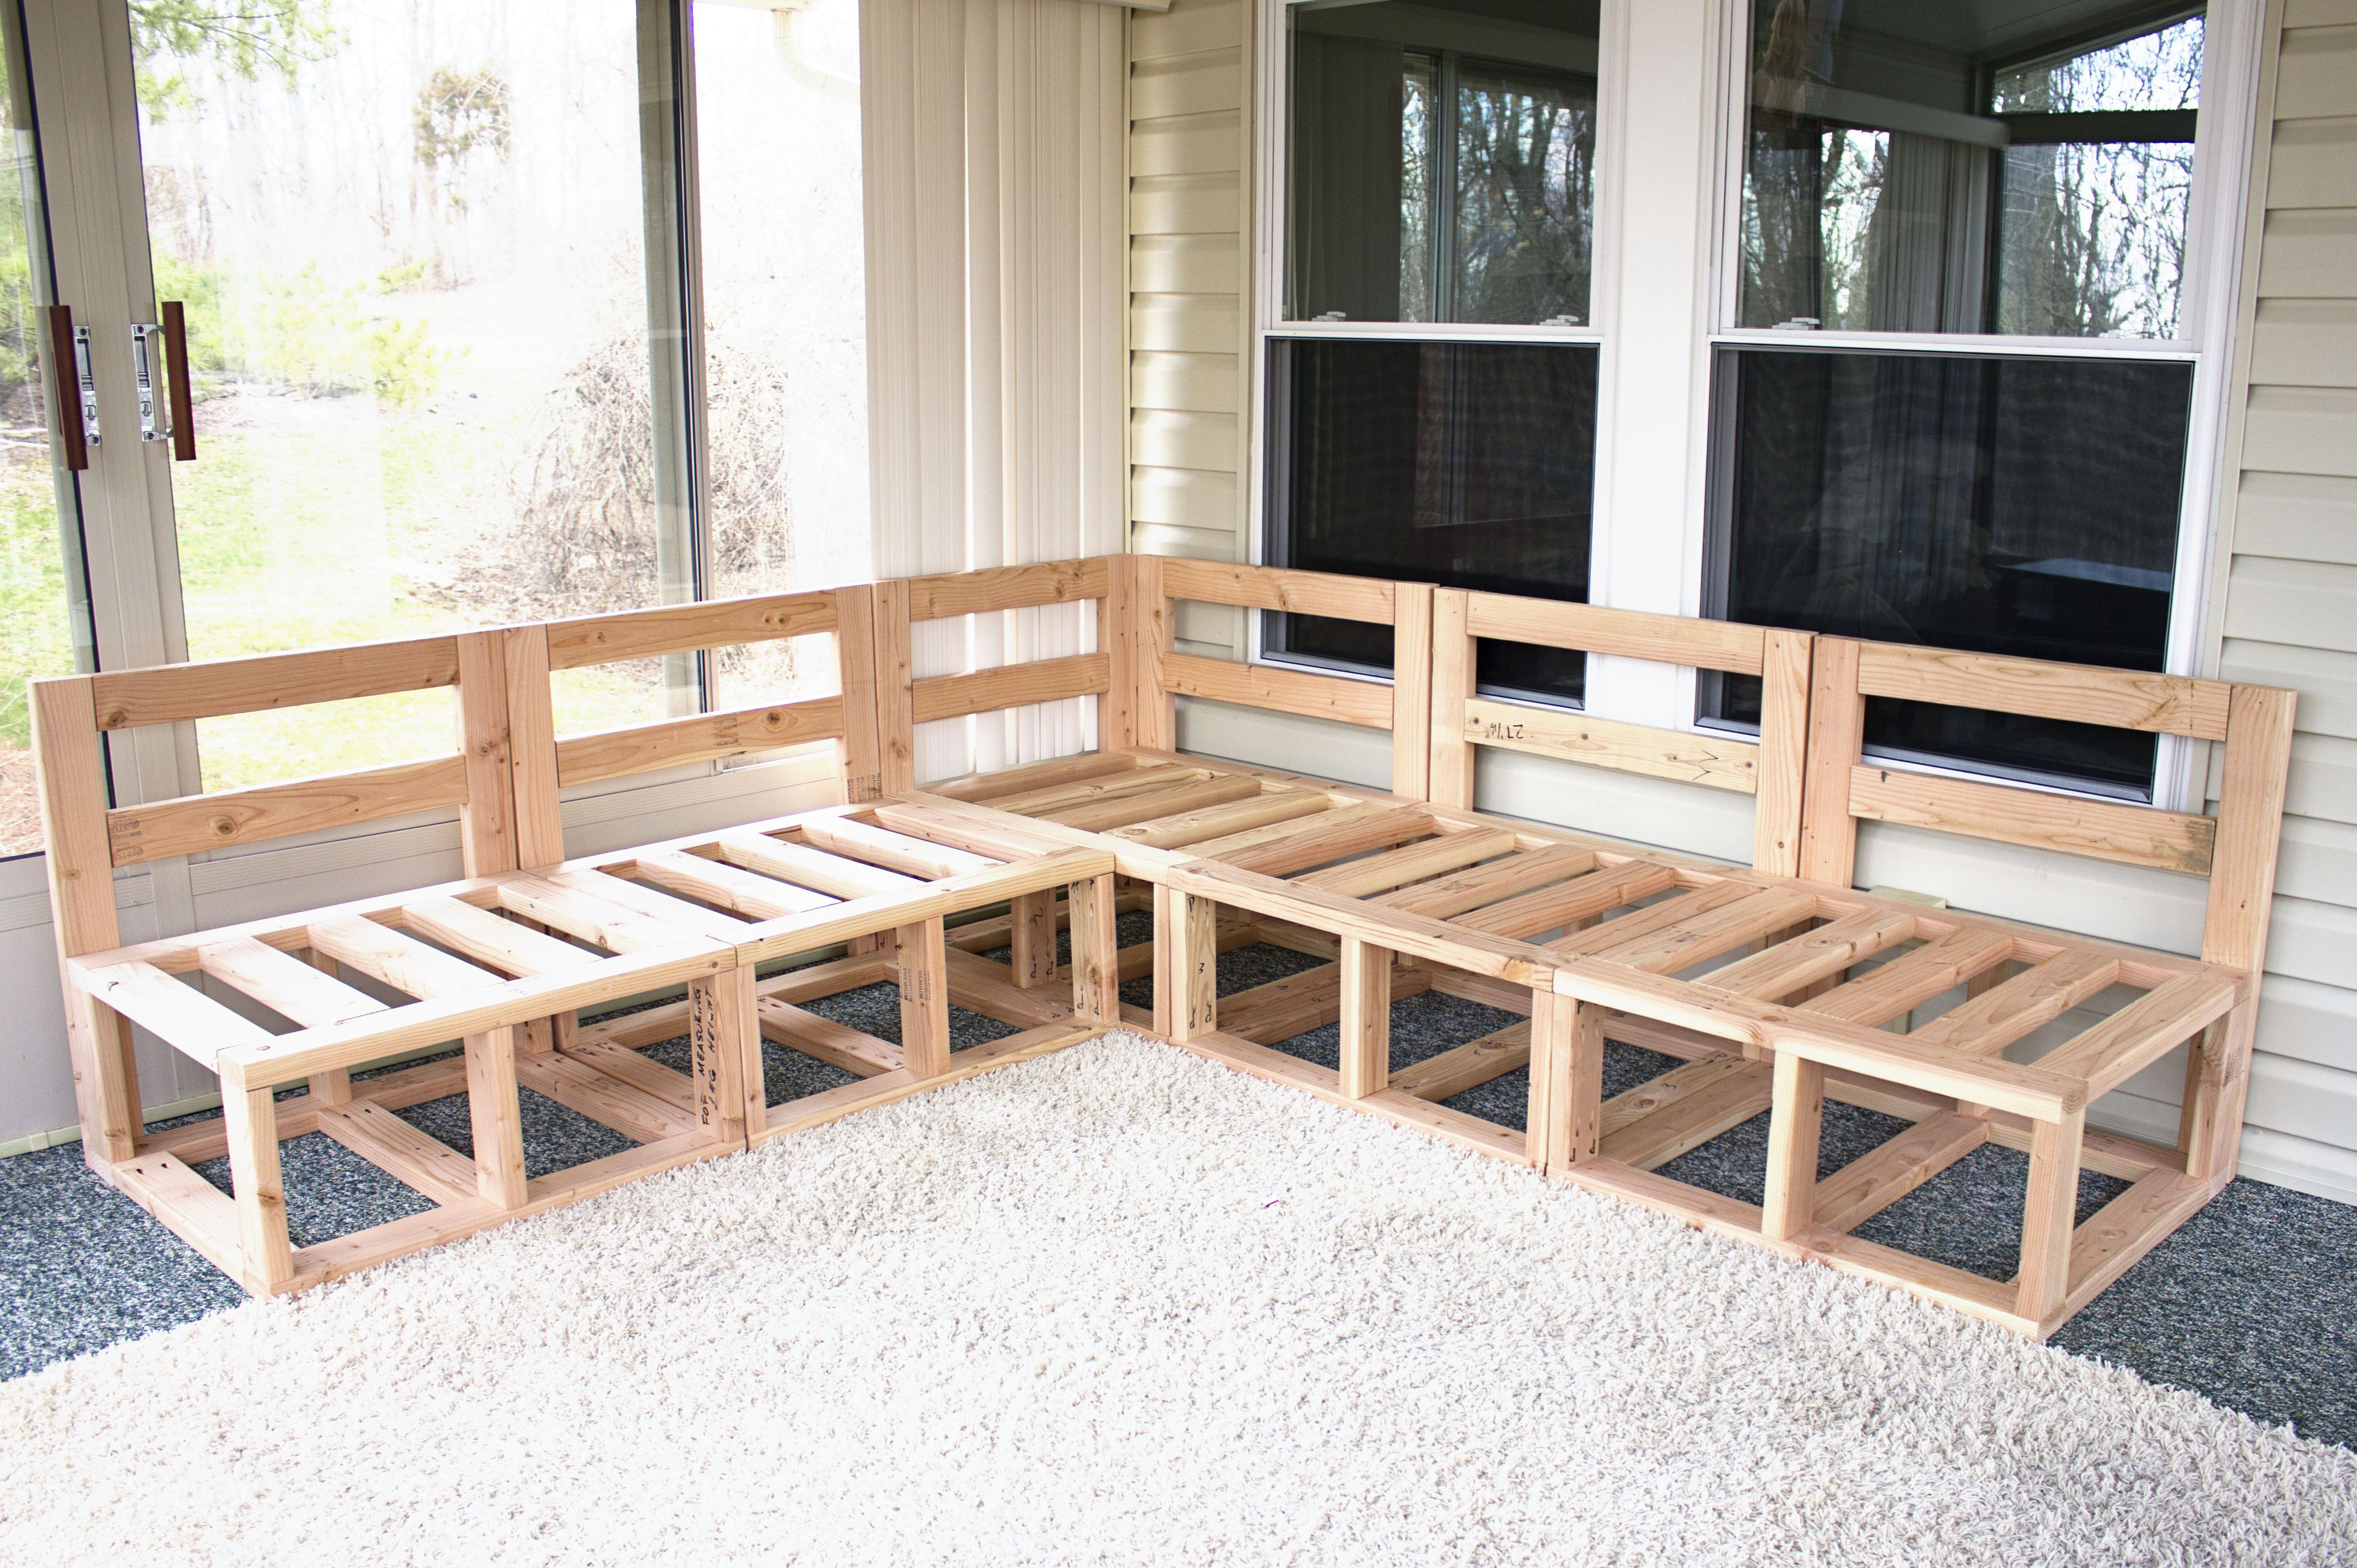 Outdoor sectional framing DIY project Diy outdoor